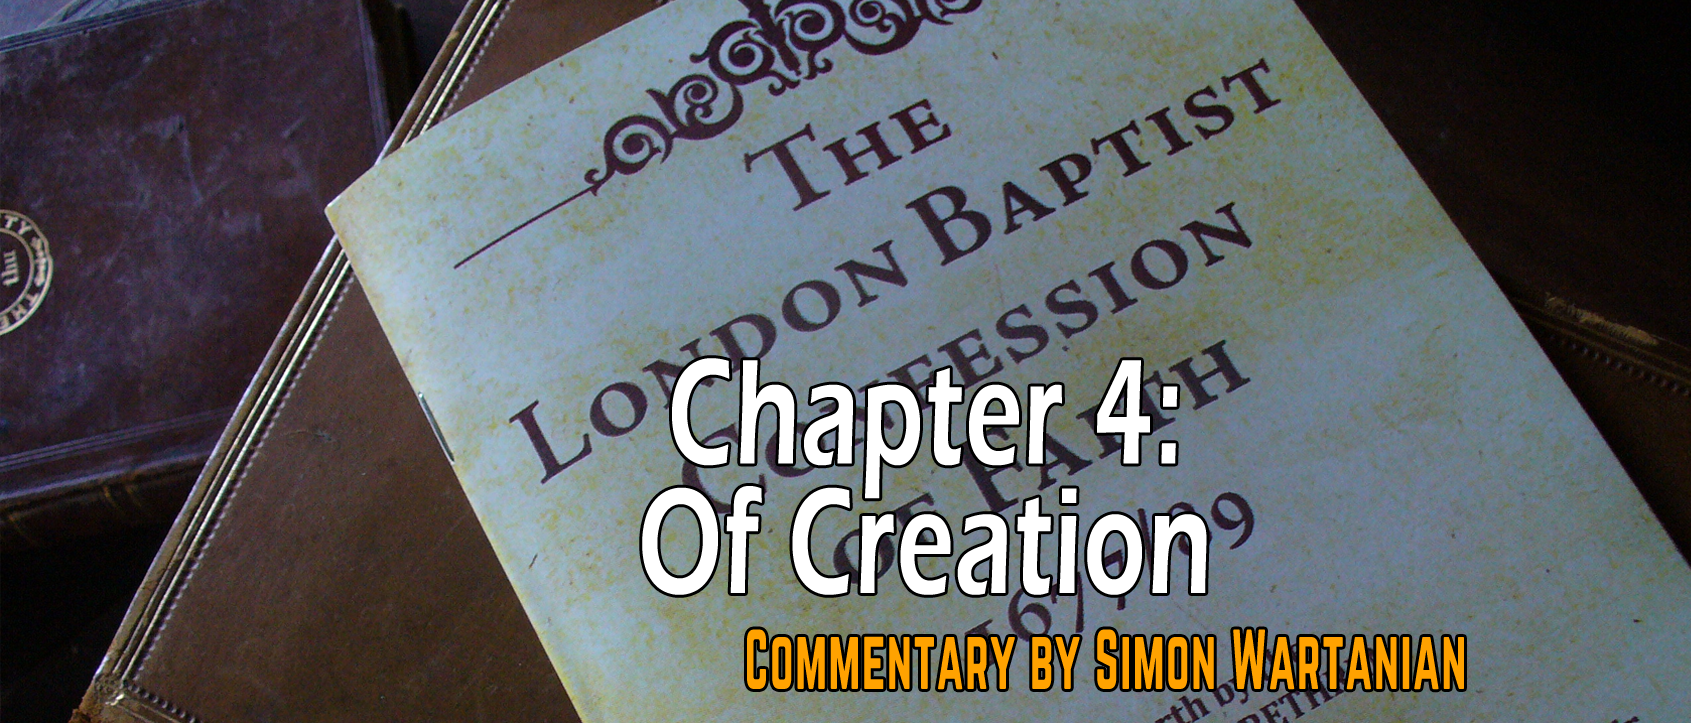 1689 Baptist Confession Chapter 4: Of Creation - Commentary